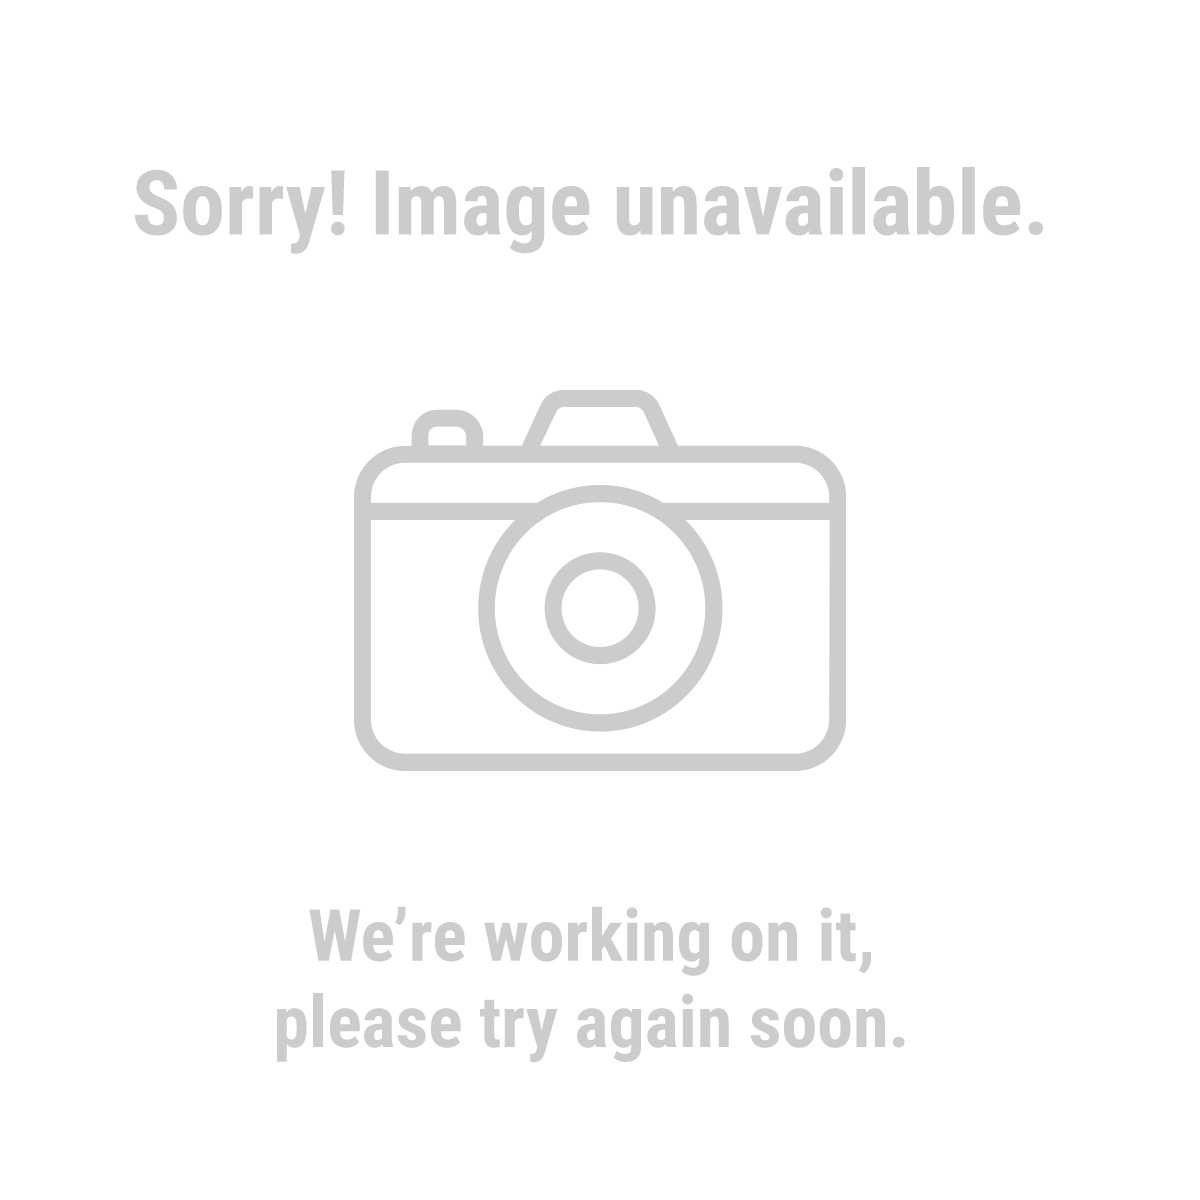 Haul Master Automotive 69595 1500 Lb.  Tri-Fold Aluminum Loading Ramp